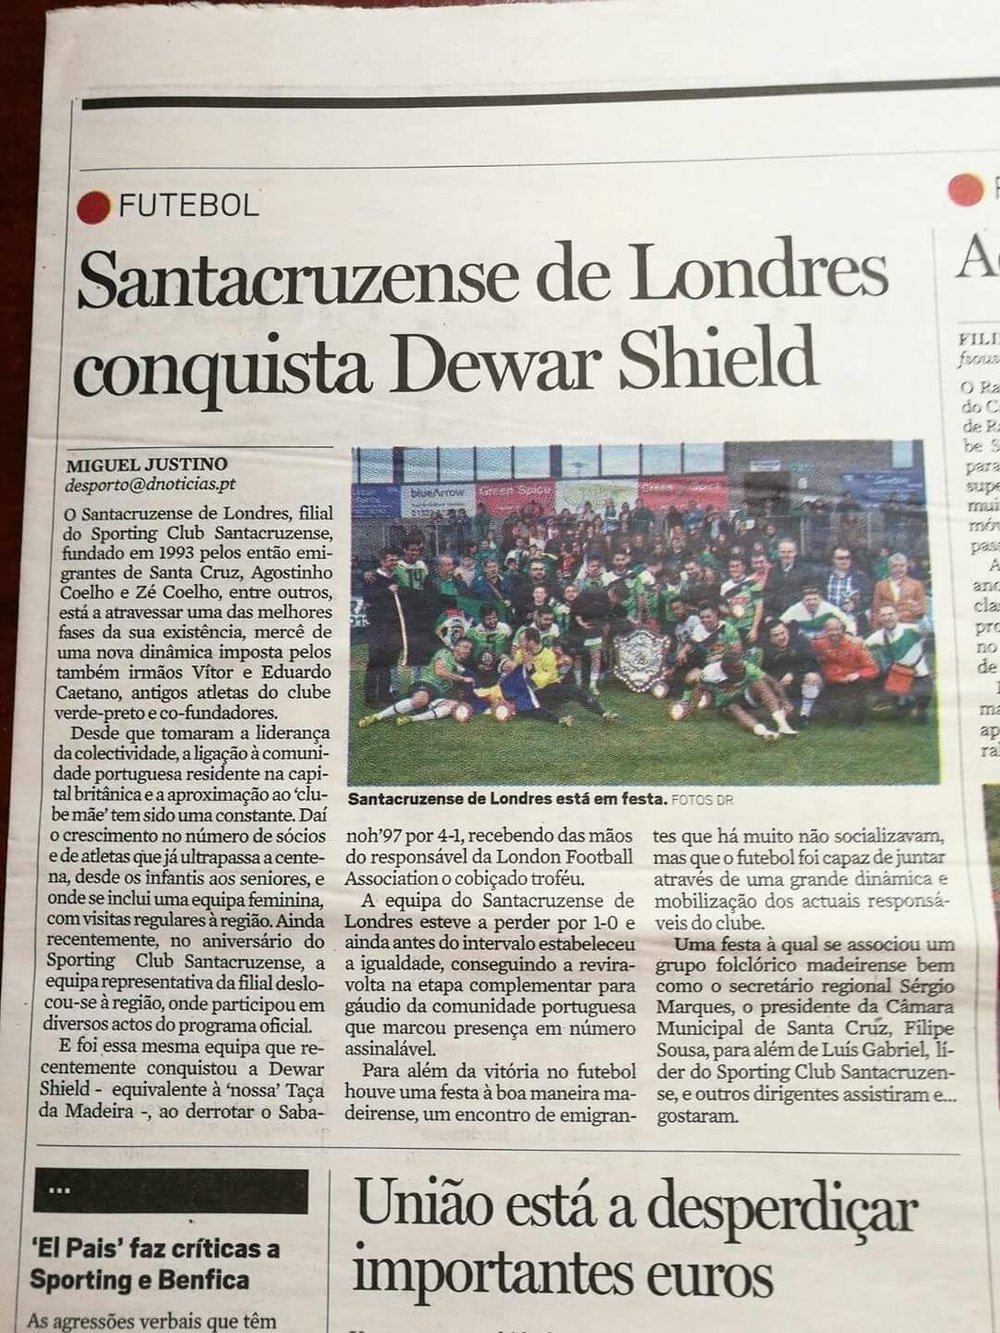 Portuguese Newspaper reports on Santacruzense's victory over Sabanoh to lift the Dewar Shield